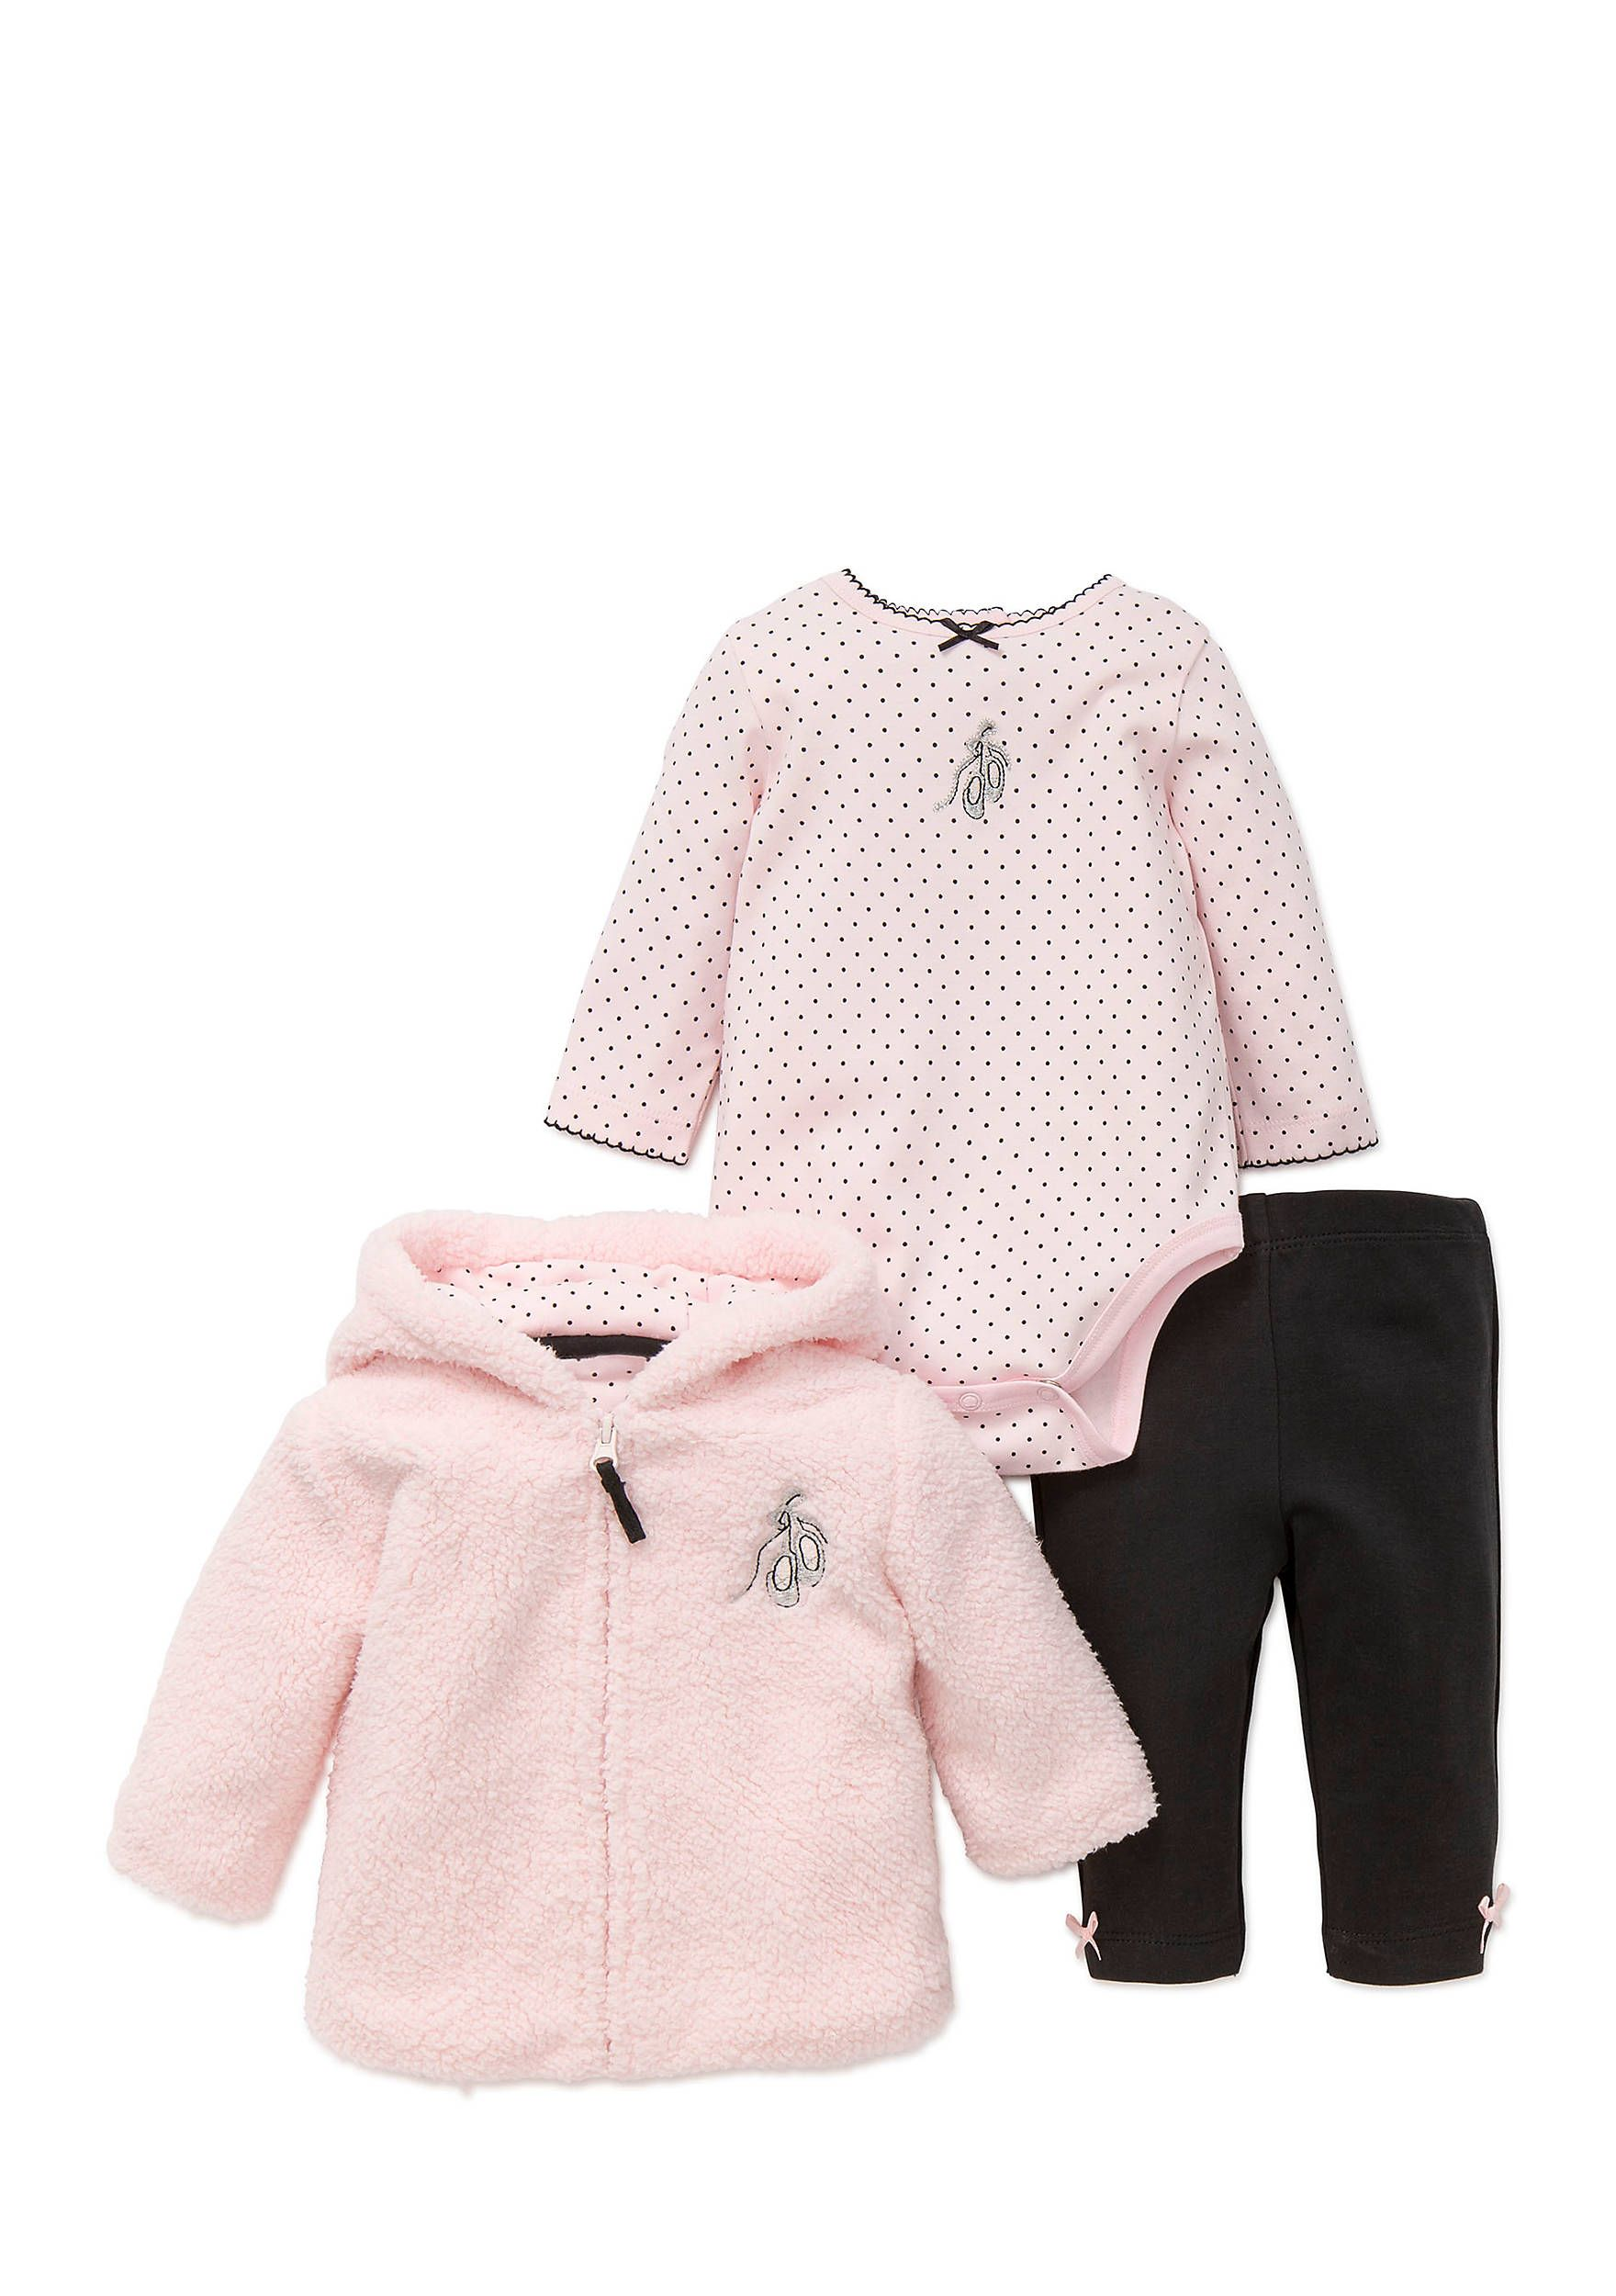 52bd5c9a4 A cozy jacket takes center stage on this trio of newborn baby girl  separates made for your prima ballerina. This sweet and plush set Includes  a long-sleeve ...